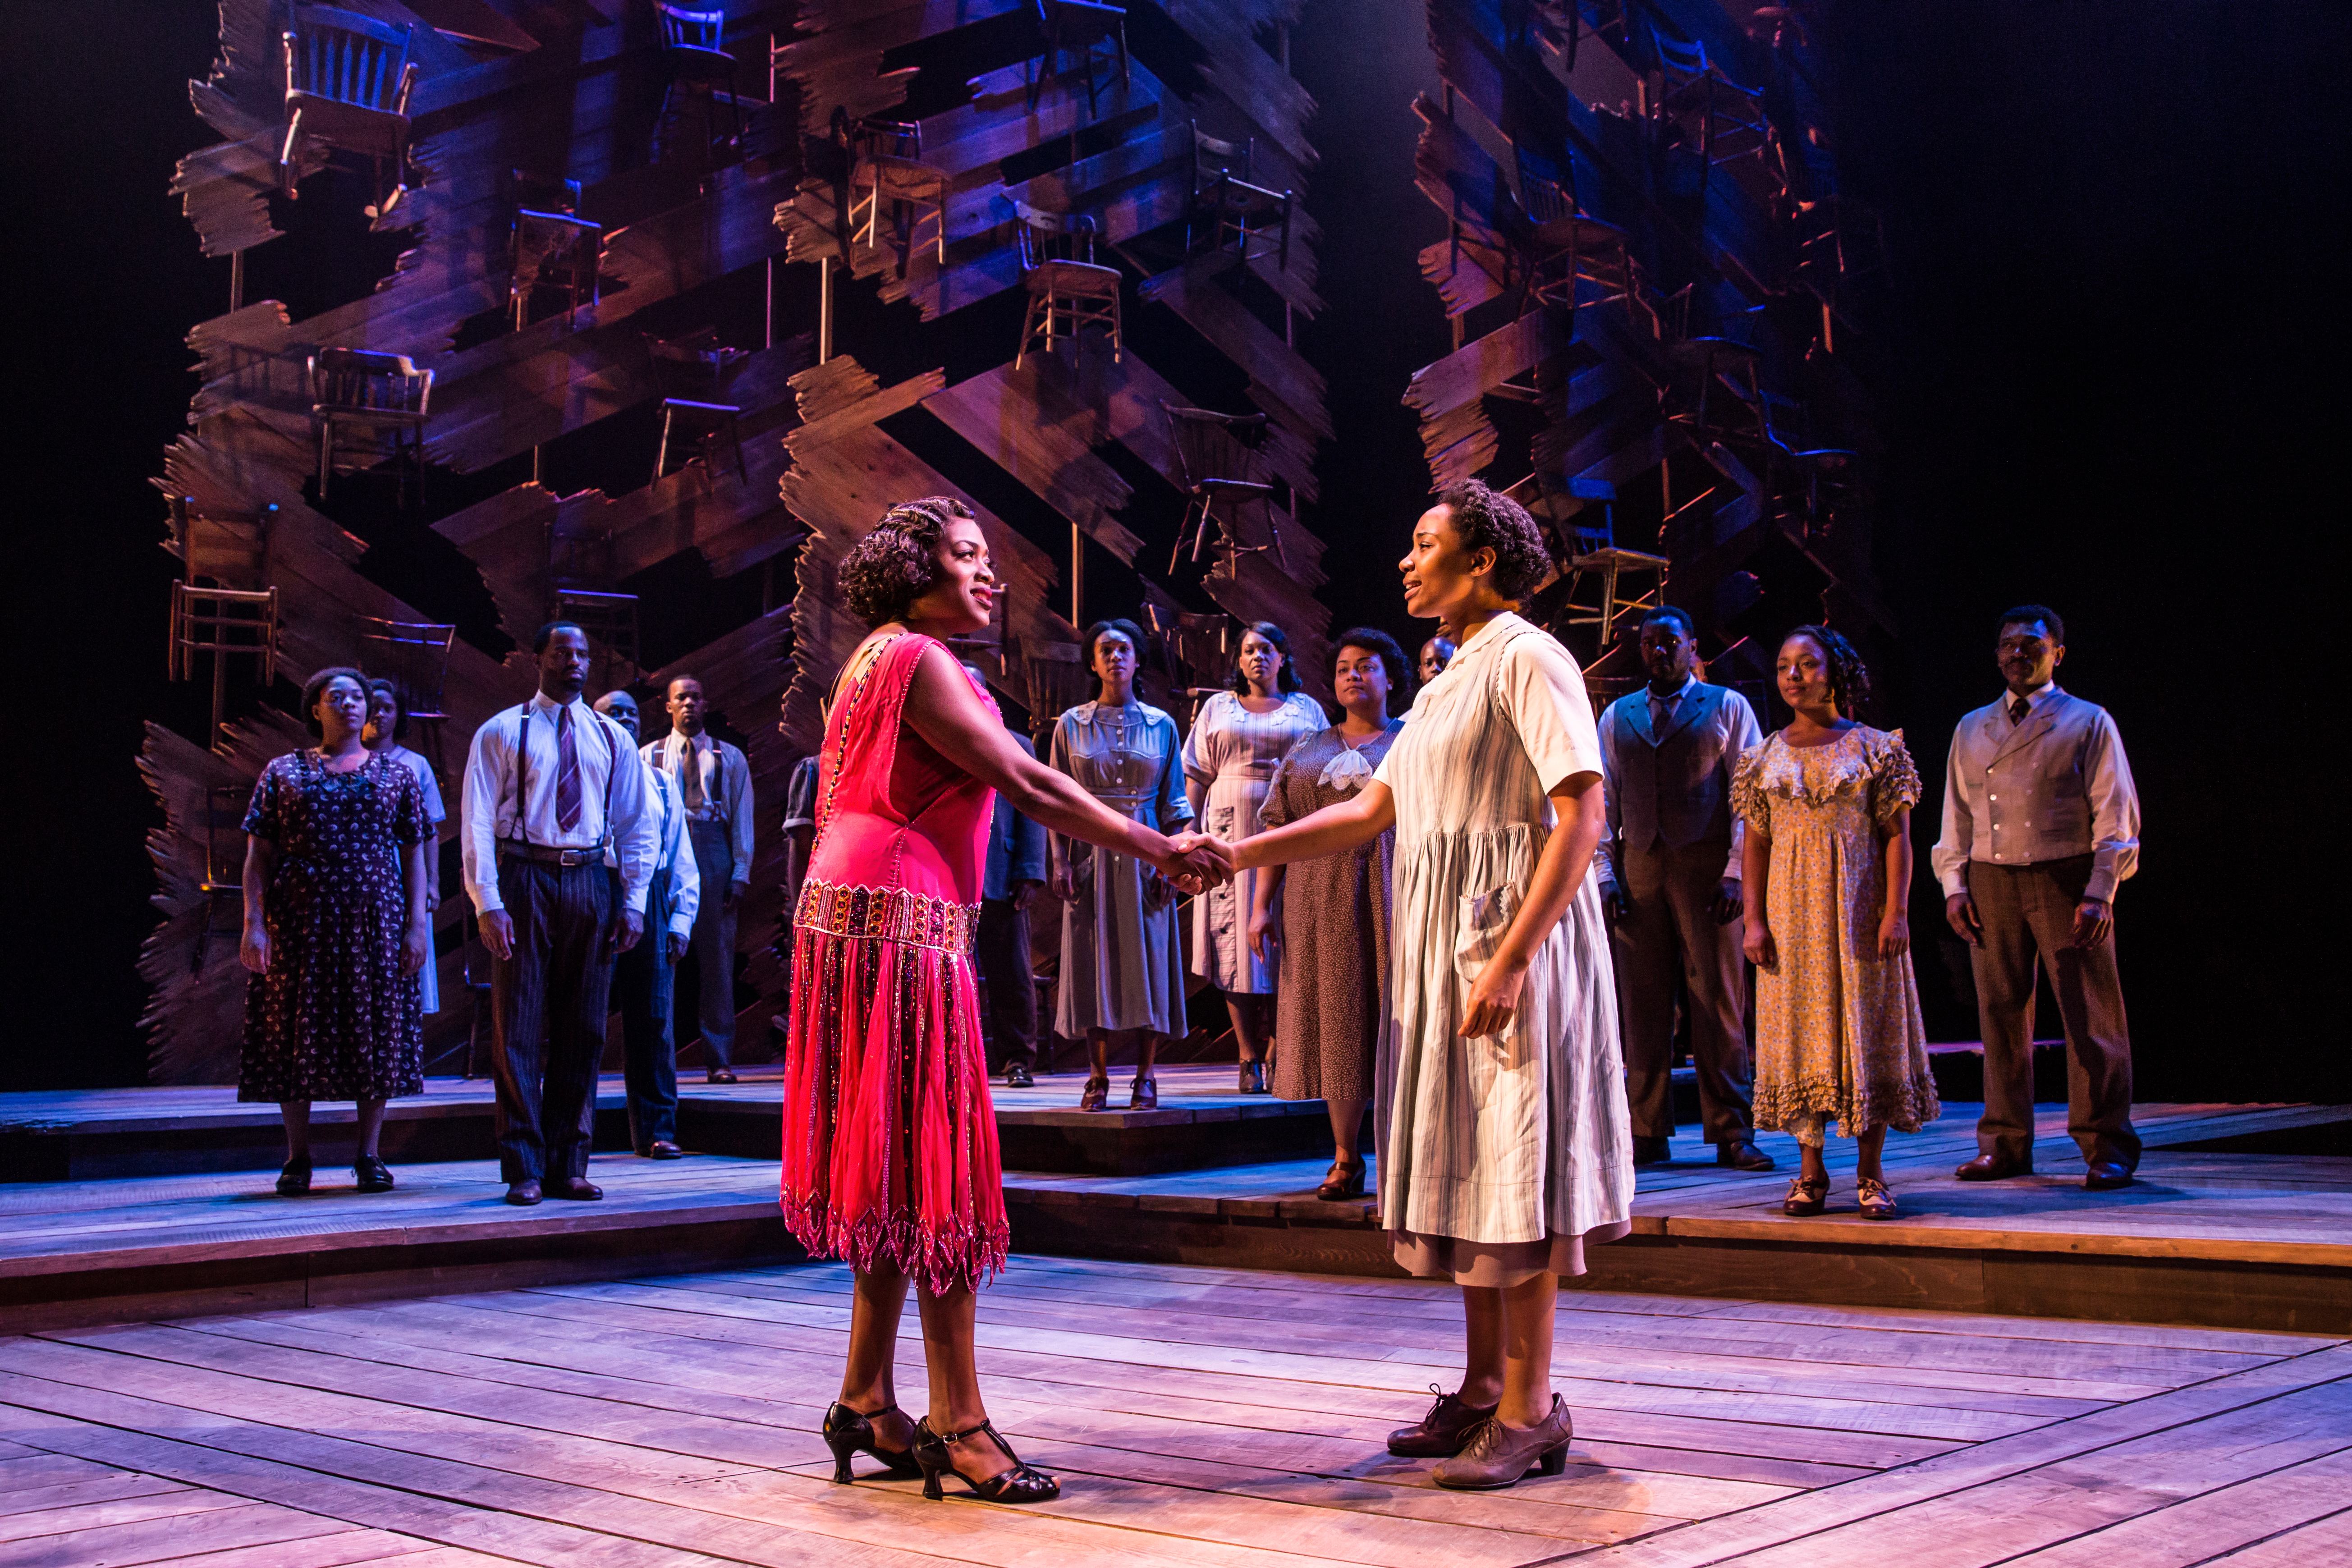 The Color Purple, the 2016 Tony Award winner for Best Musical Revival, is playing at the Kennedy Center through August 26. (Image: Matthew Murphy)